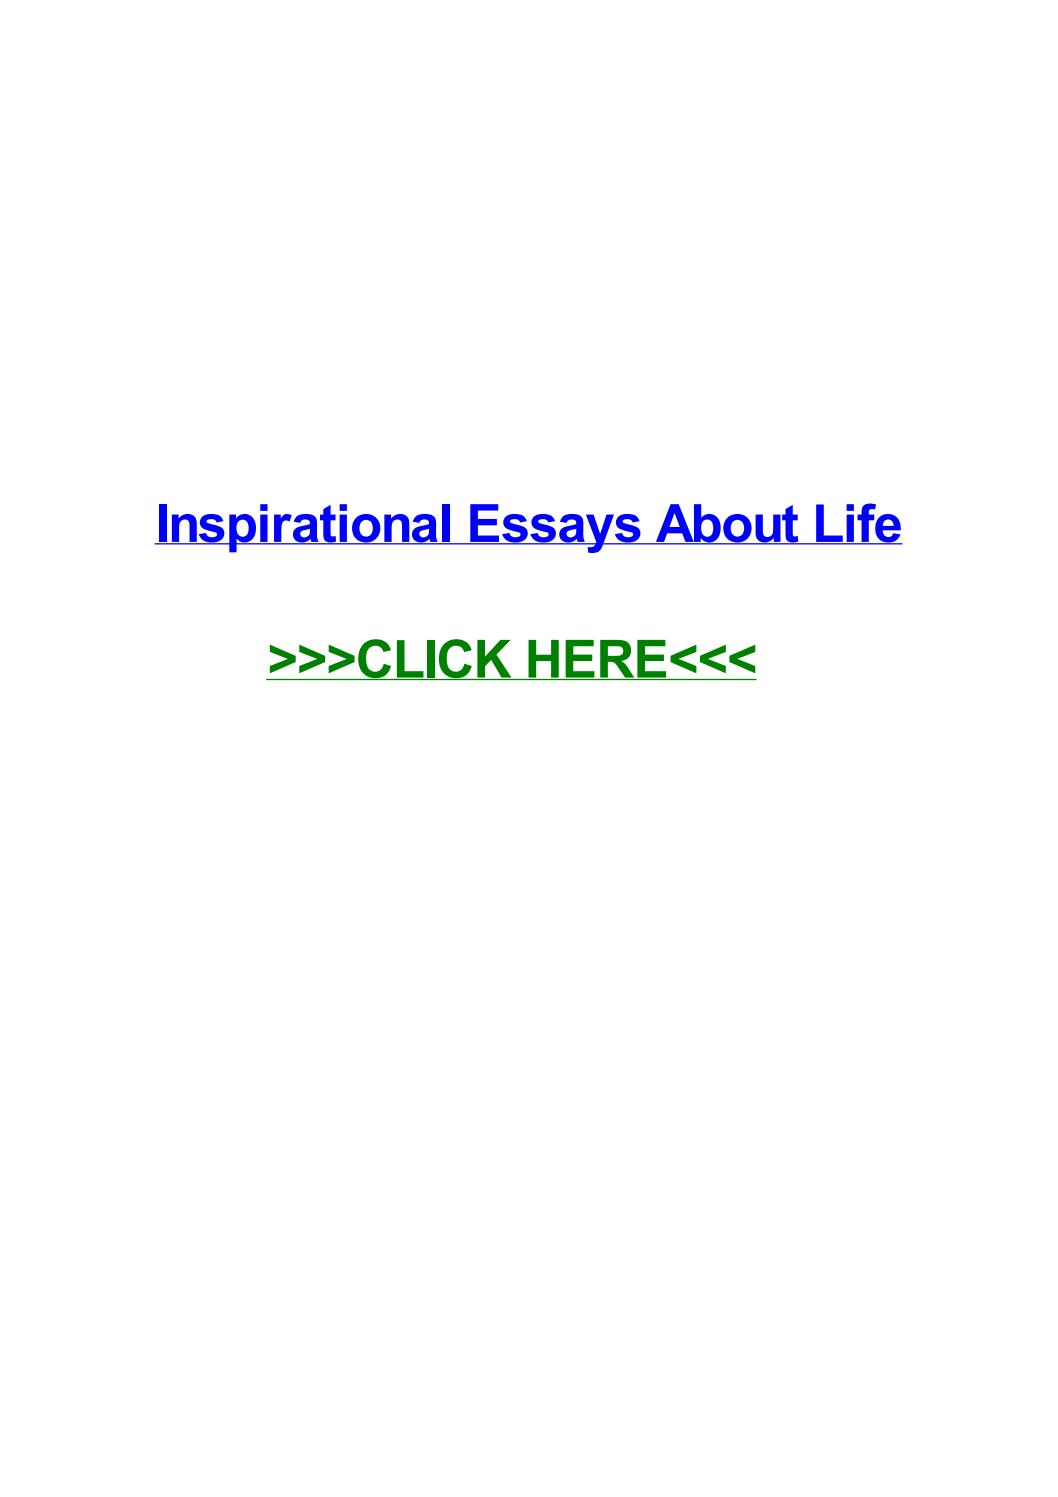 007 Essay Example Page 1 Inspirational Breathtaking Essays In Hindi About Life And Struggles Fathers Full